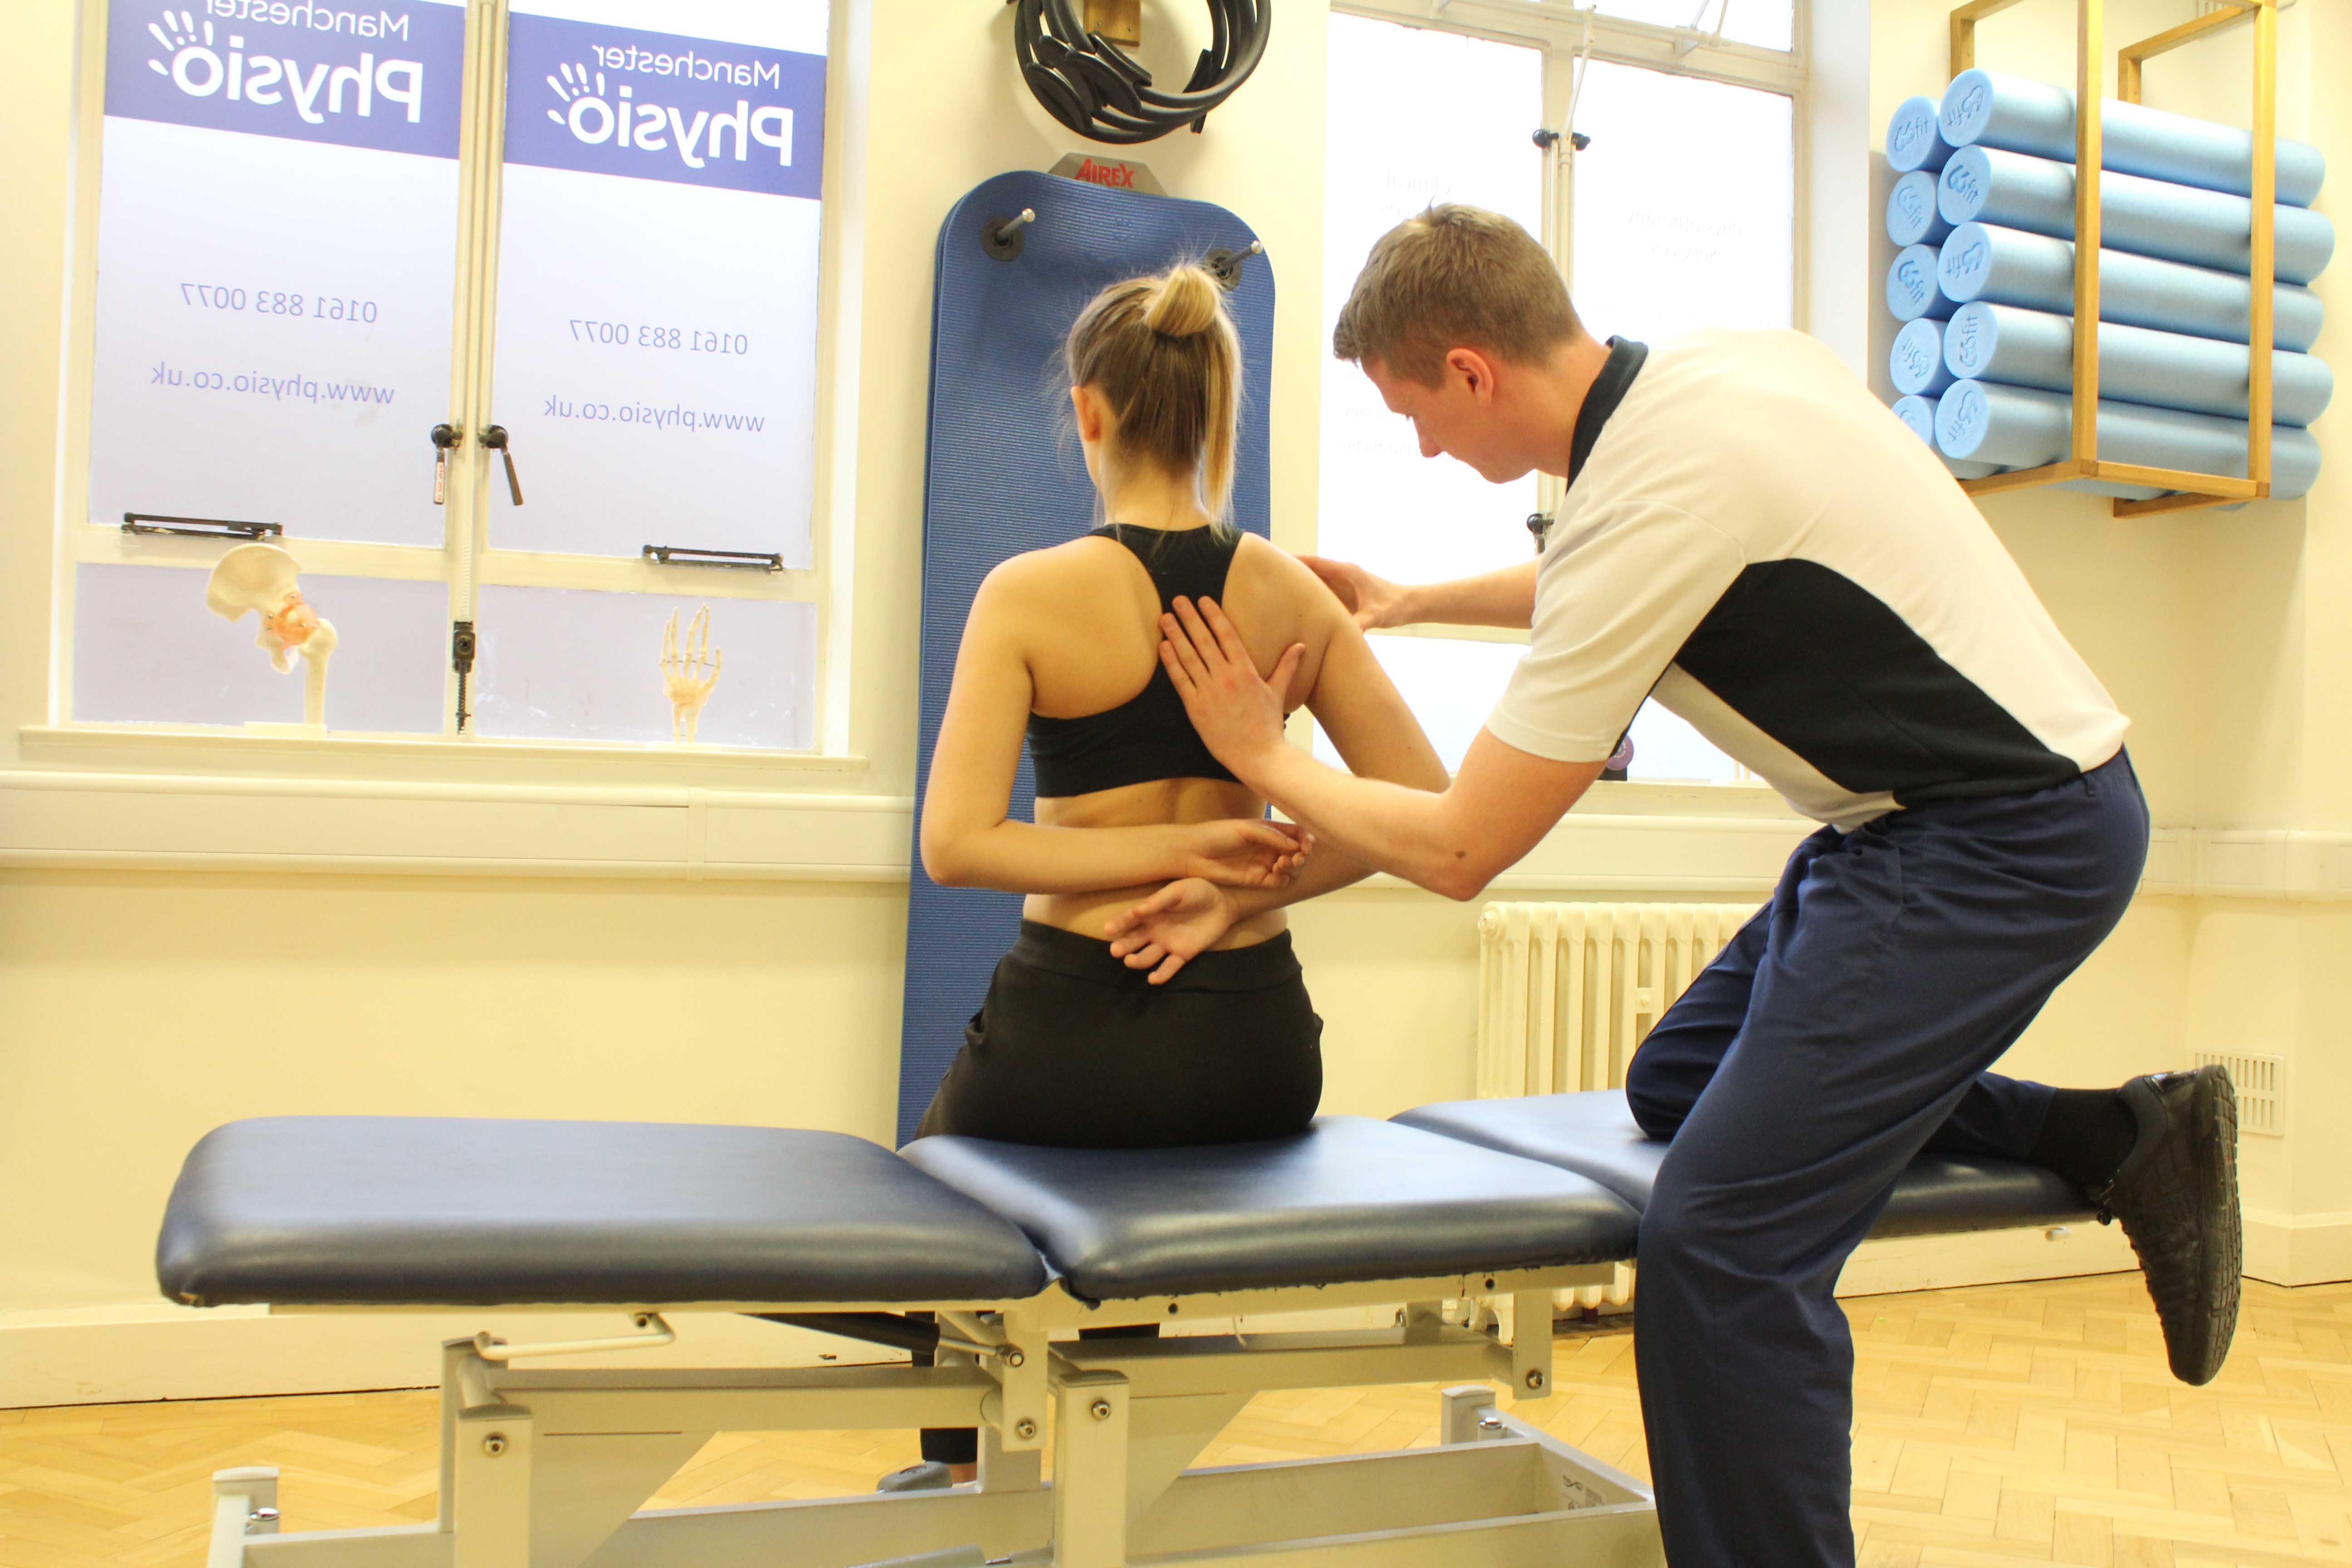 Scapula setting assessment and exercises performed by an experienced physiotherapist